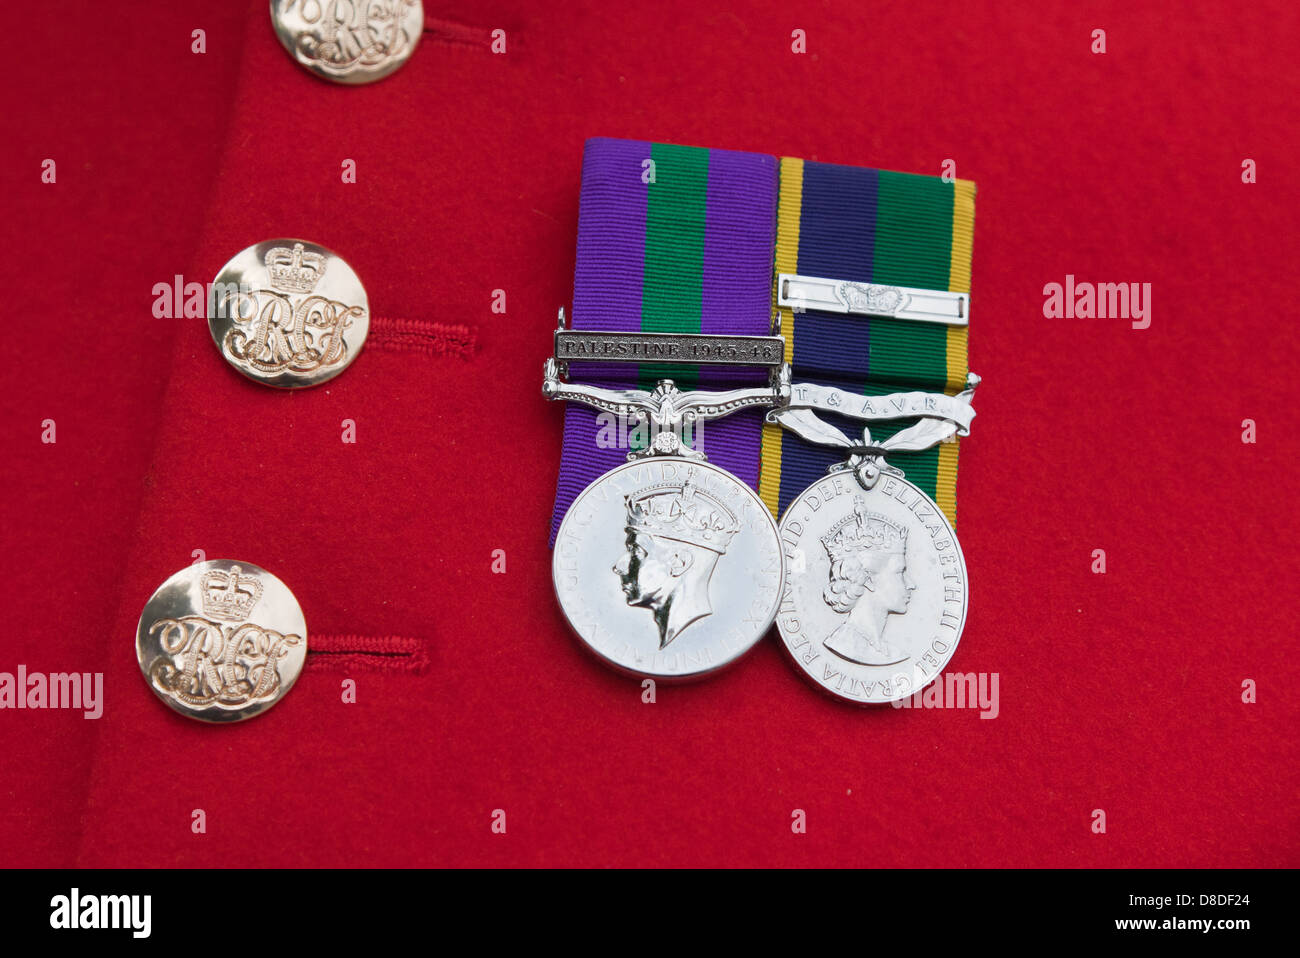 Chelsea Pensioners Medals at the Royal Hospital Chelsea London UK - Stock Image